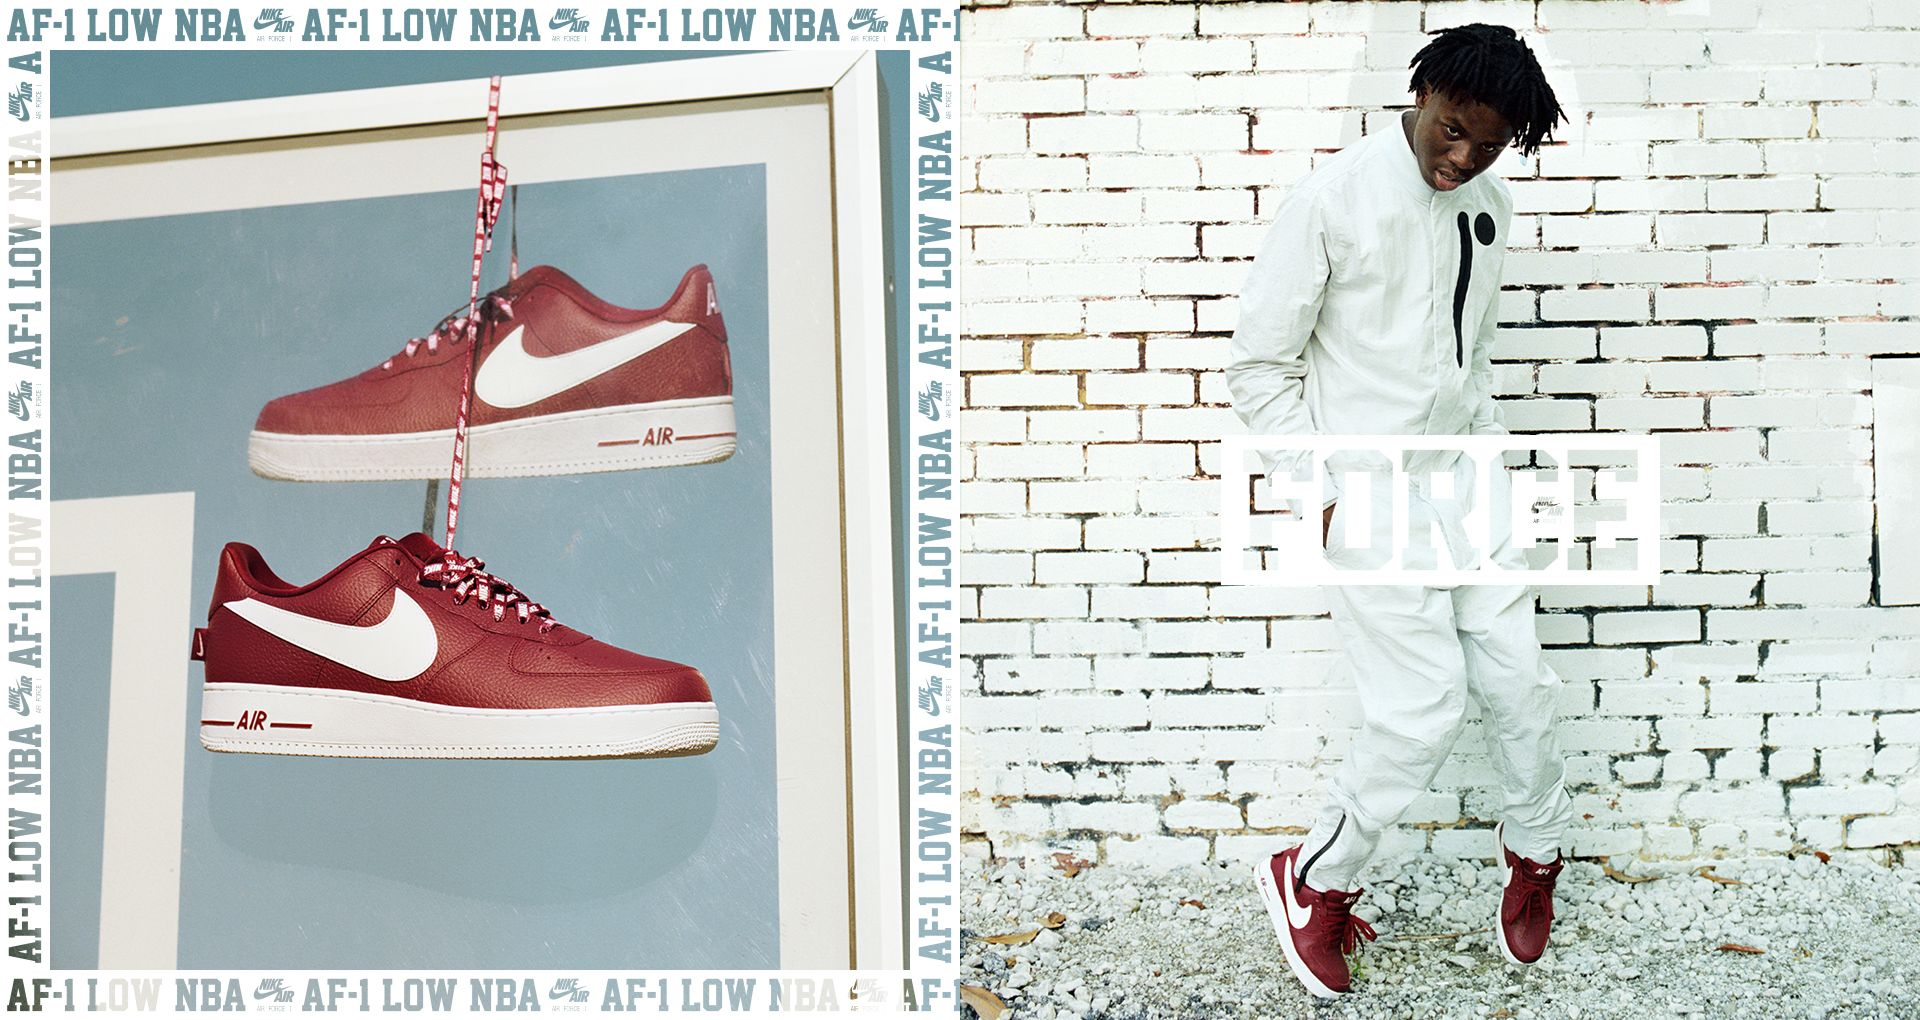 huge discount 594fd bb7e8 Nike AF-1 Low NBA  Team Red   White  Release Date. Nike+ SNKRS